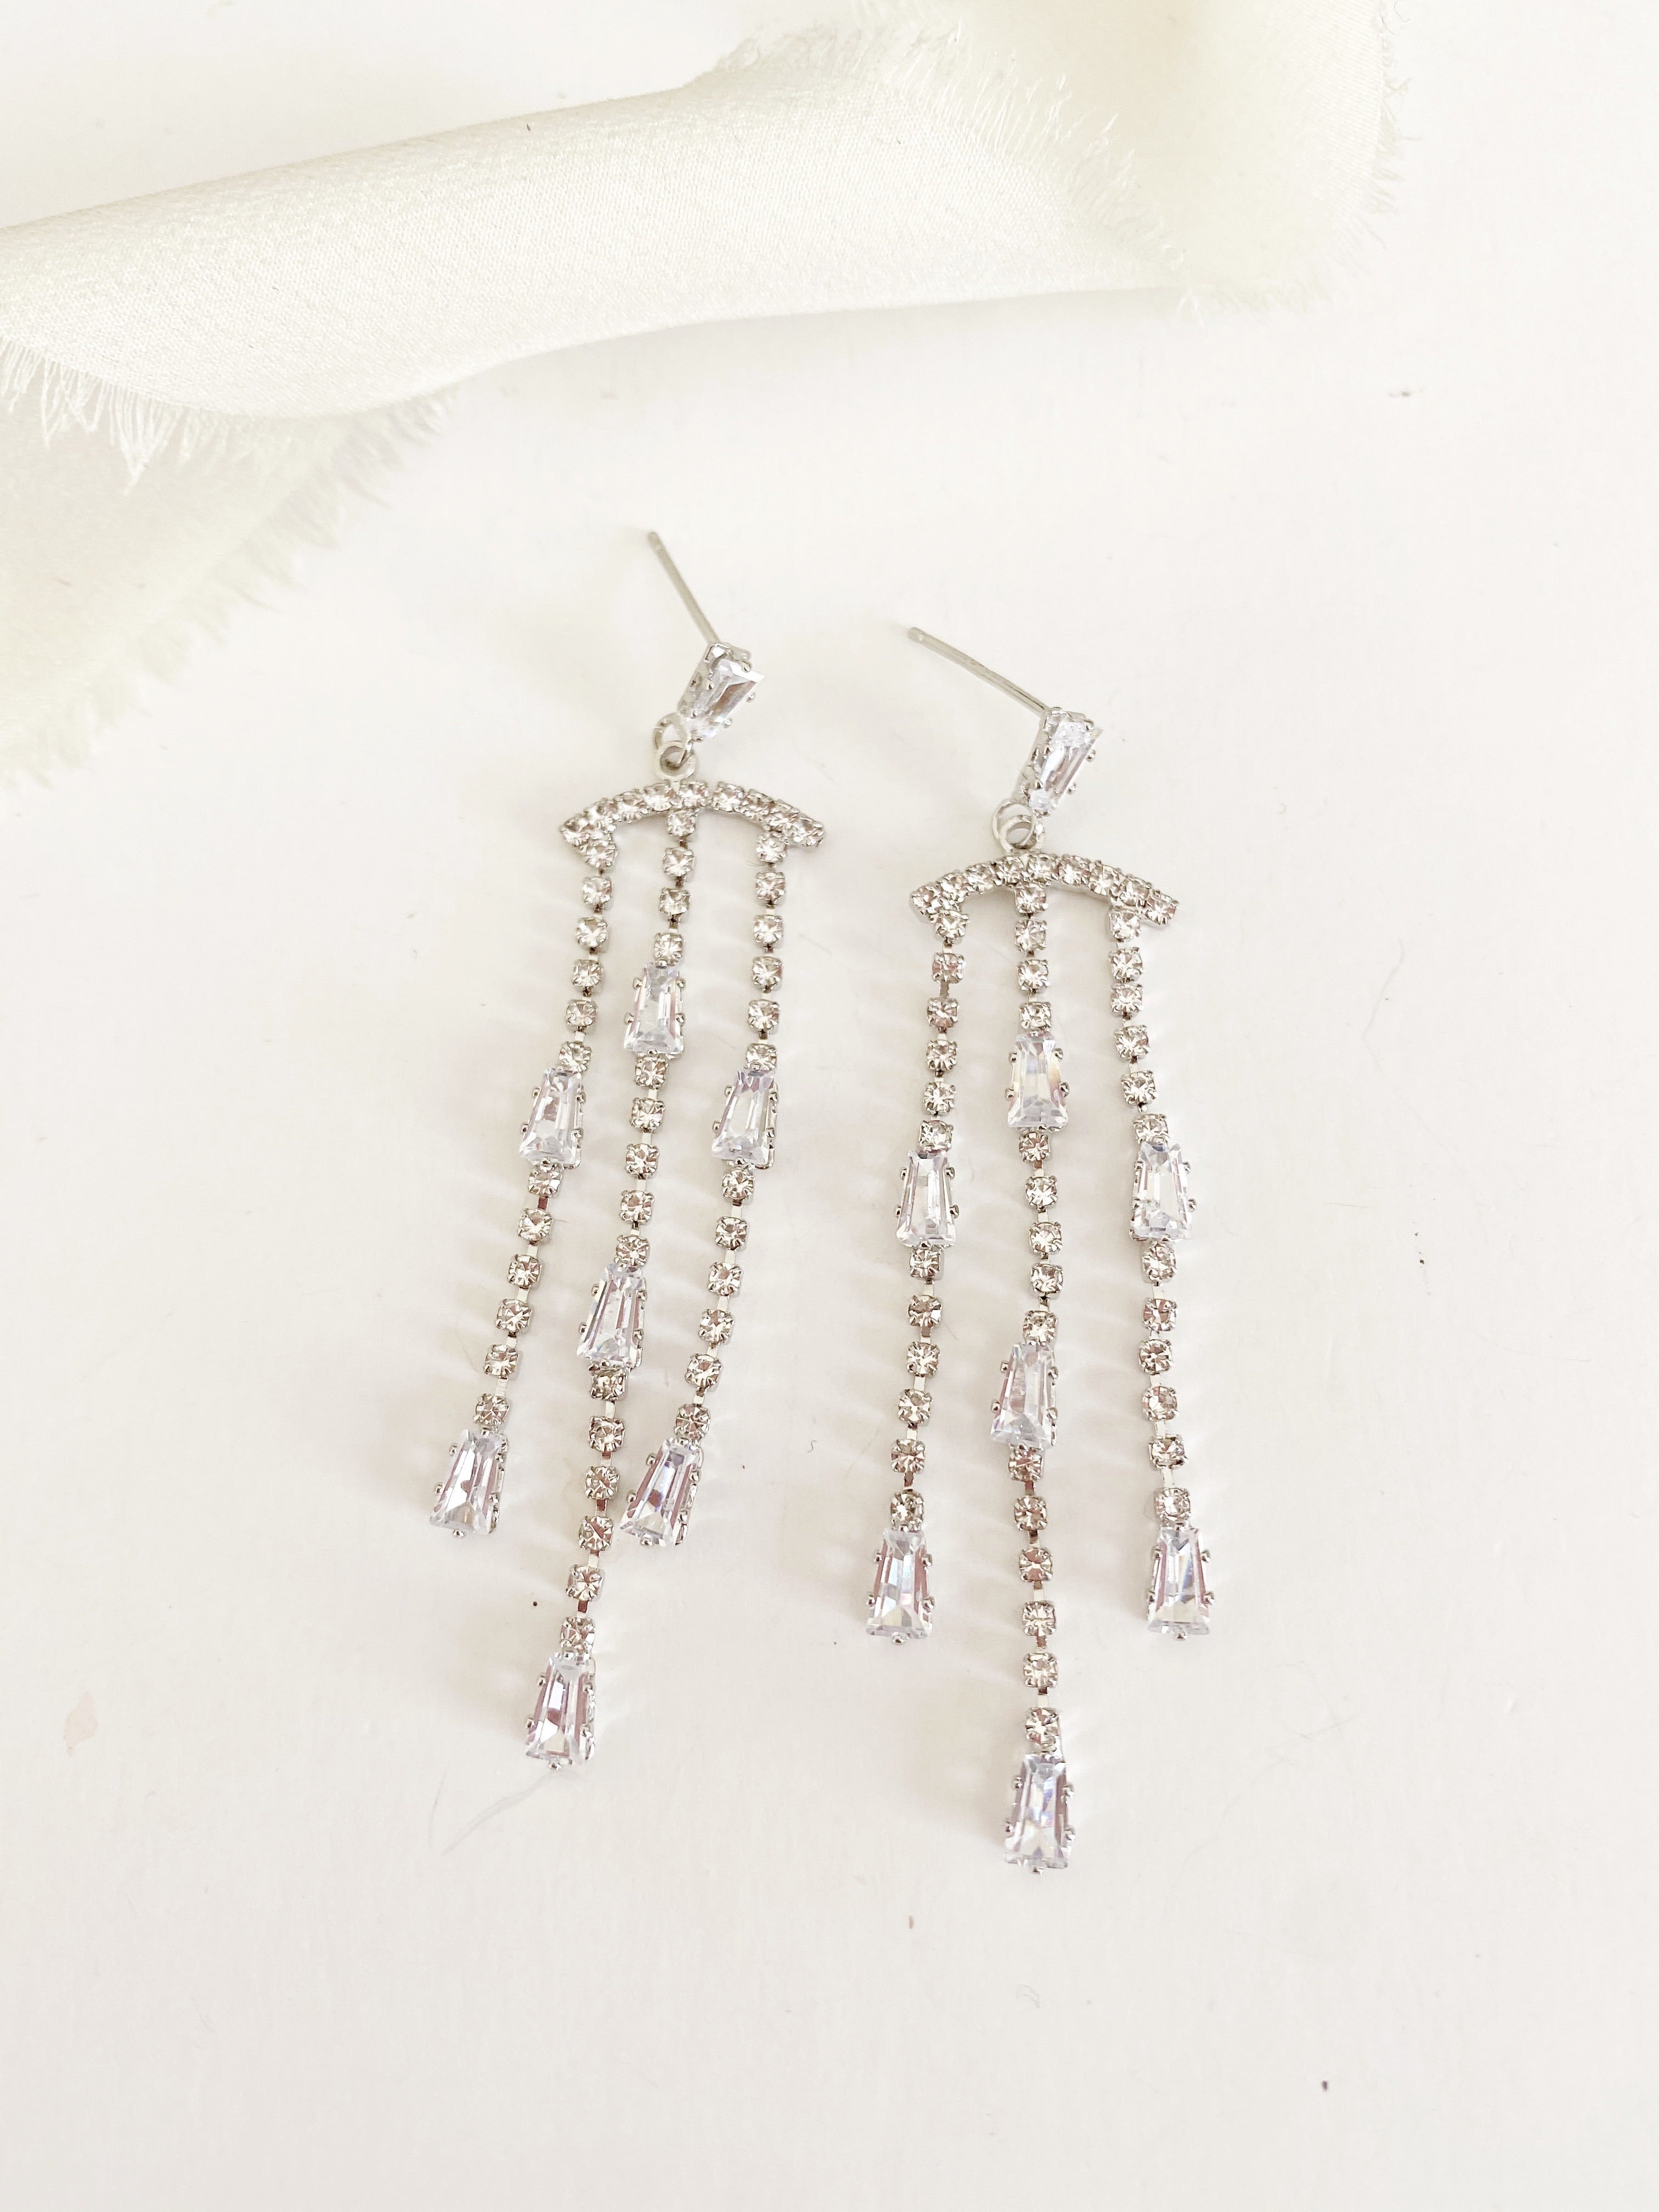 Merica Chandelier Diamond Earrings